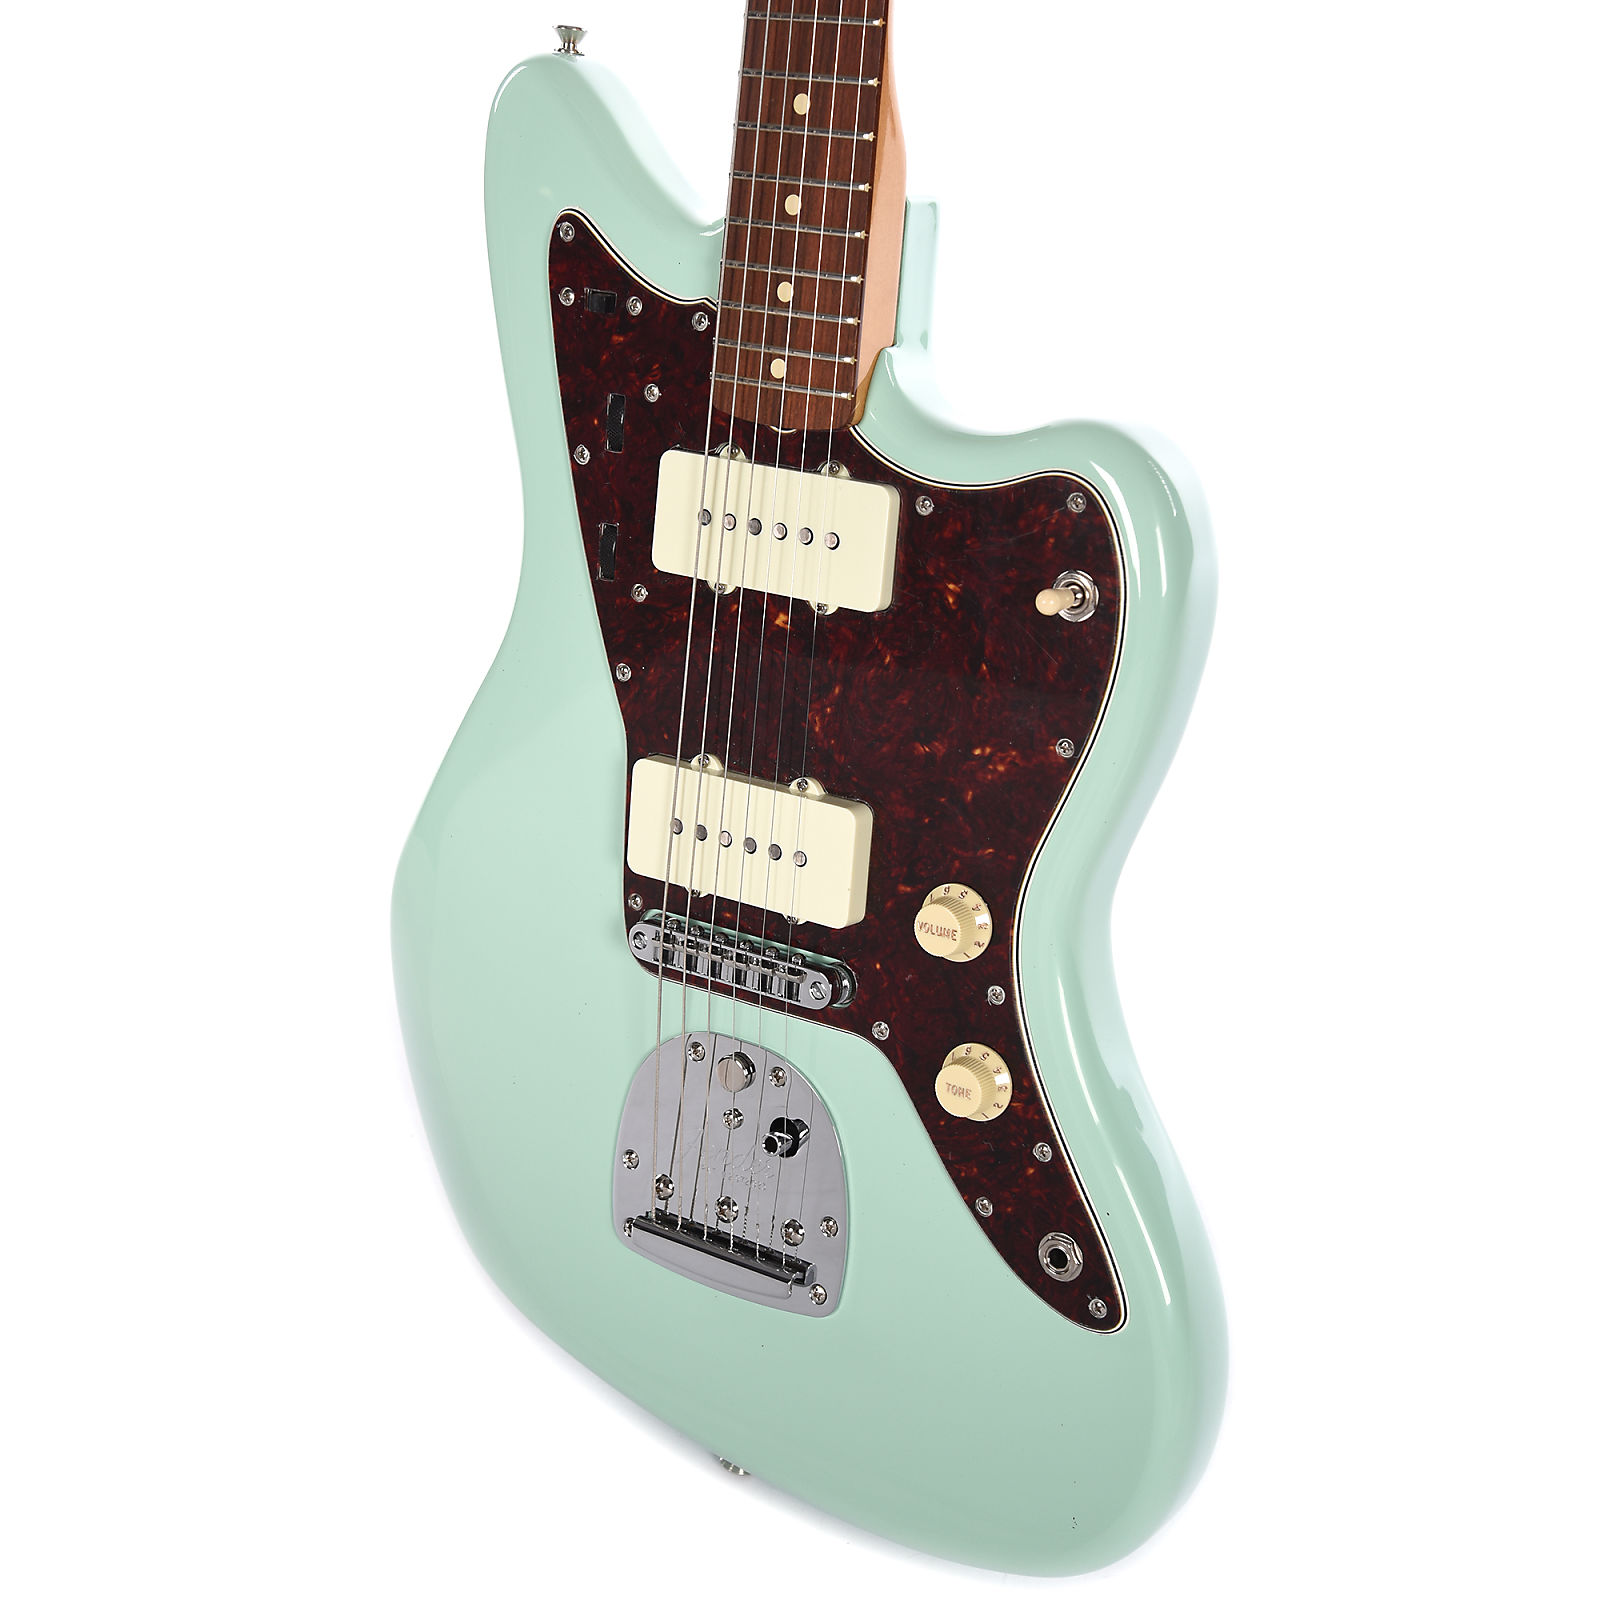 Fender Classic Player Jazzmaster Surf Green Limited Edition (CME Exclusive)